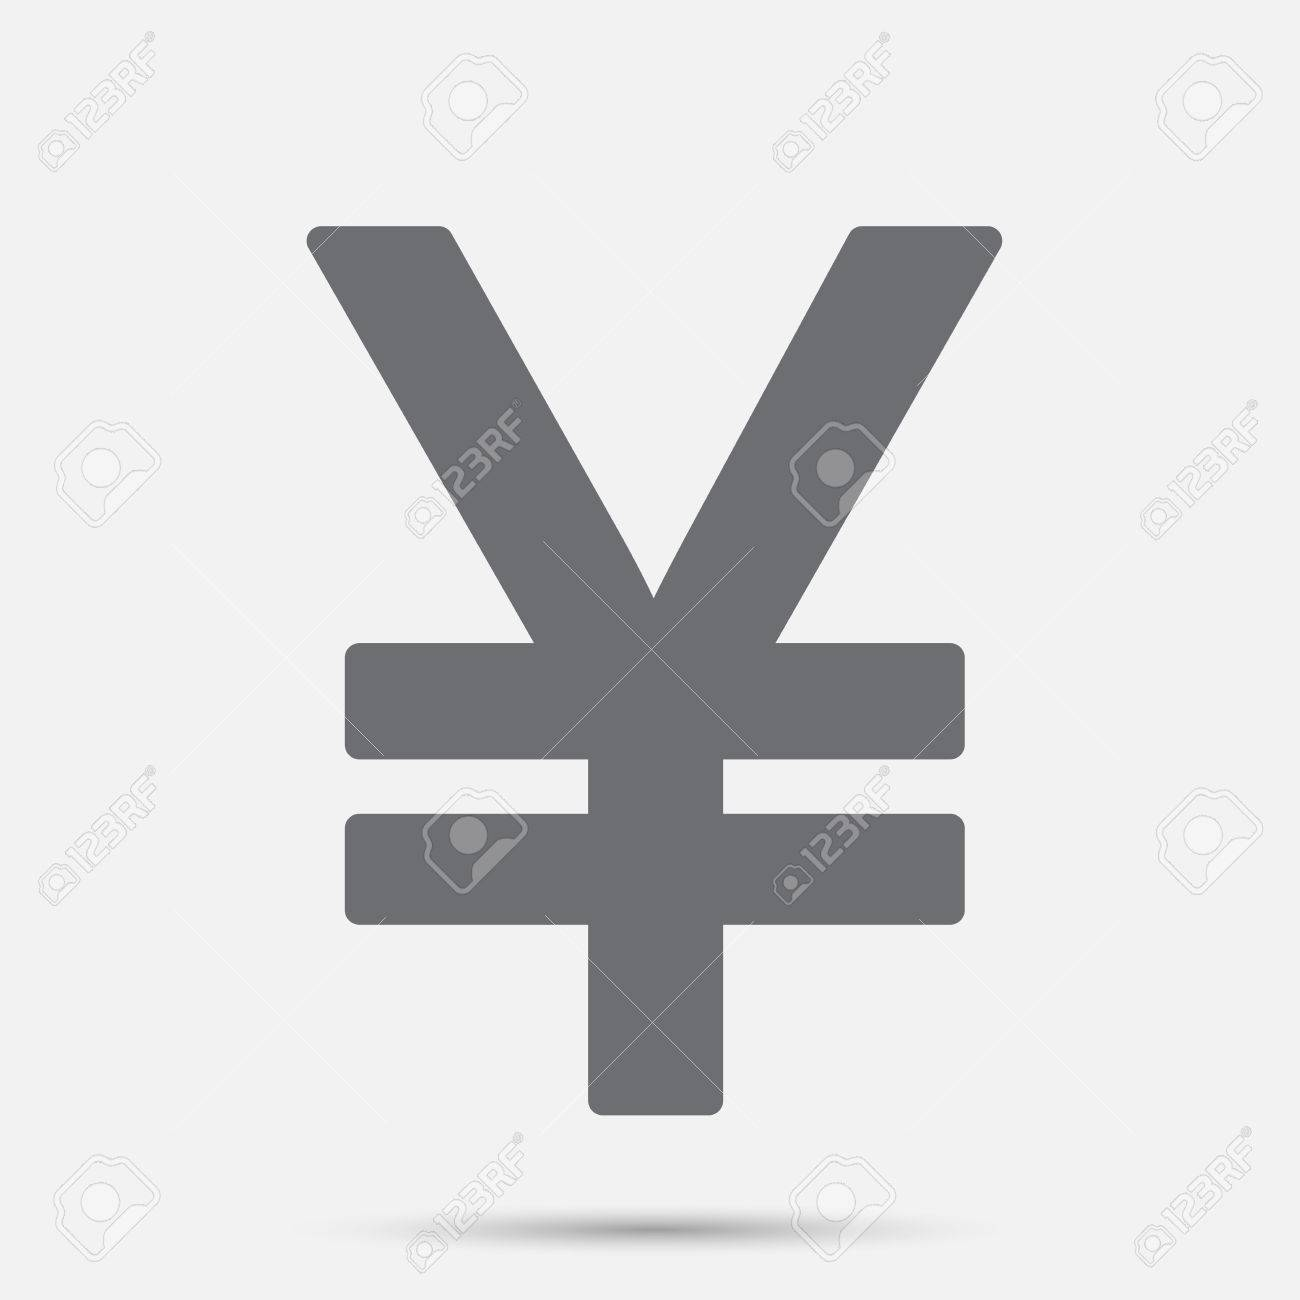 Japanese yen or chinese yuan currency symbol royalty free cliparts japanese yen or chinese yuan currency symbol stock vector 62127841 biocorpaavc Image collections